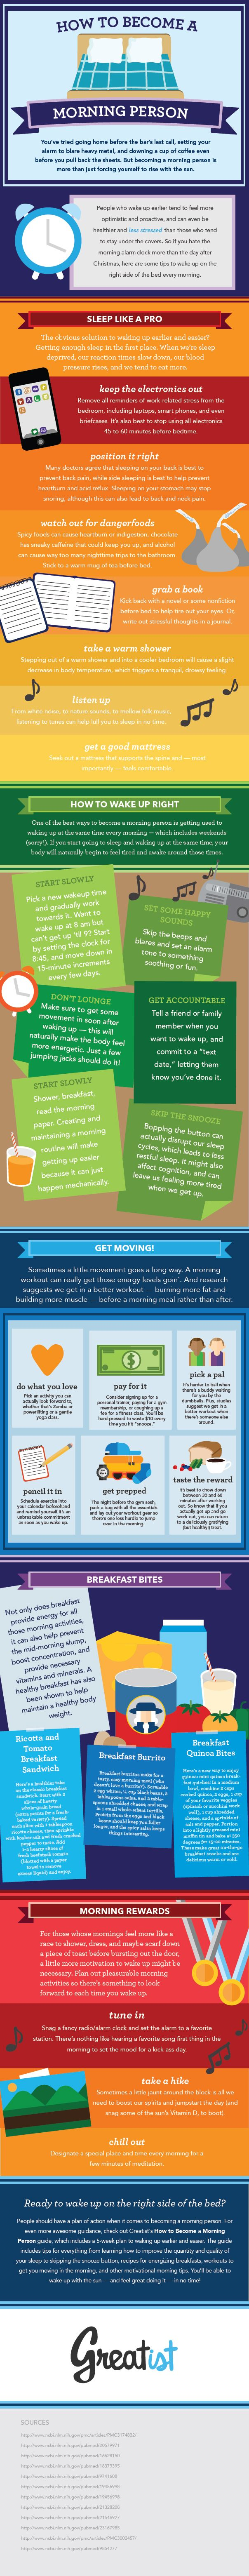 Yes, You Can Force Yourself to Become a Morning Person. Here's How. (Infographic)